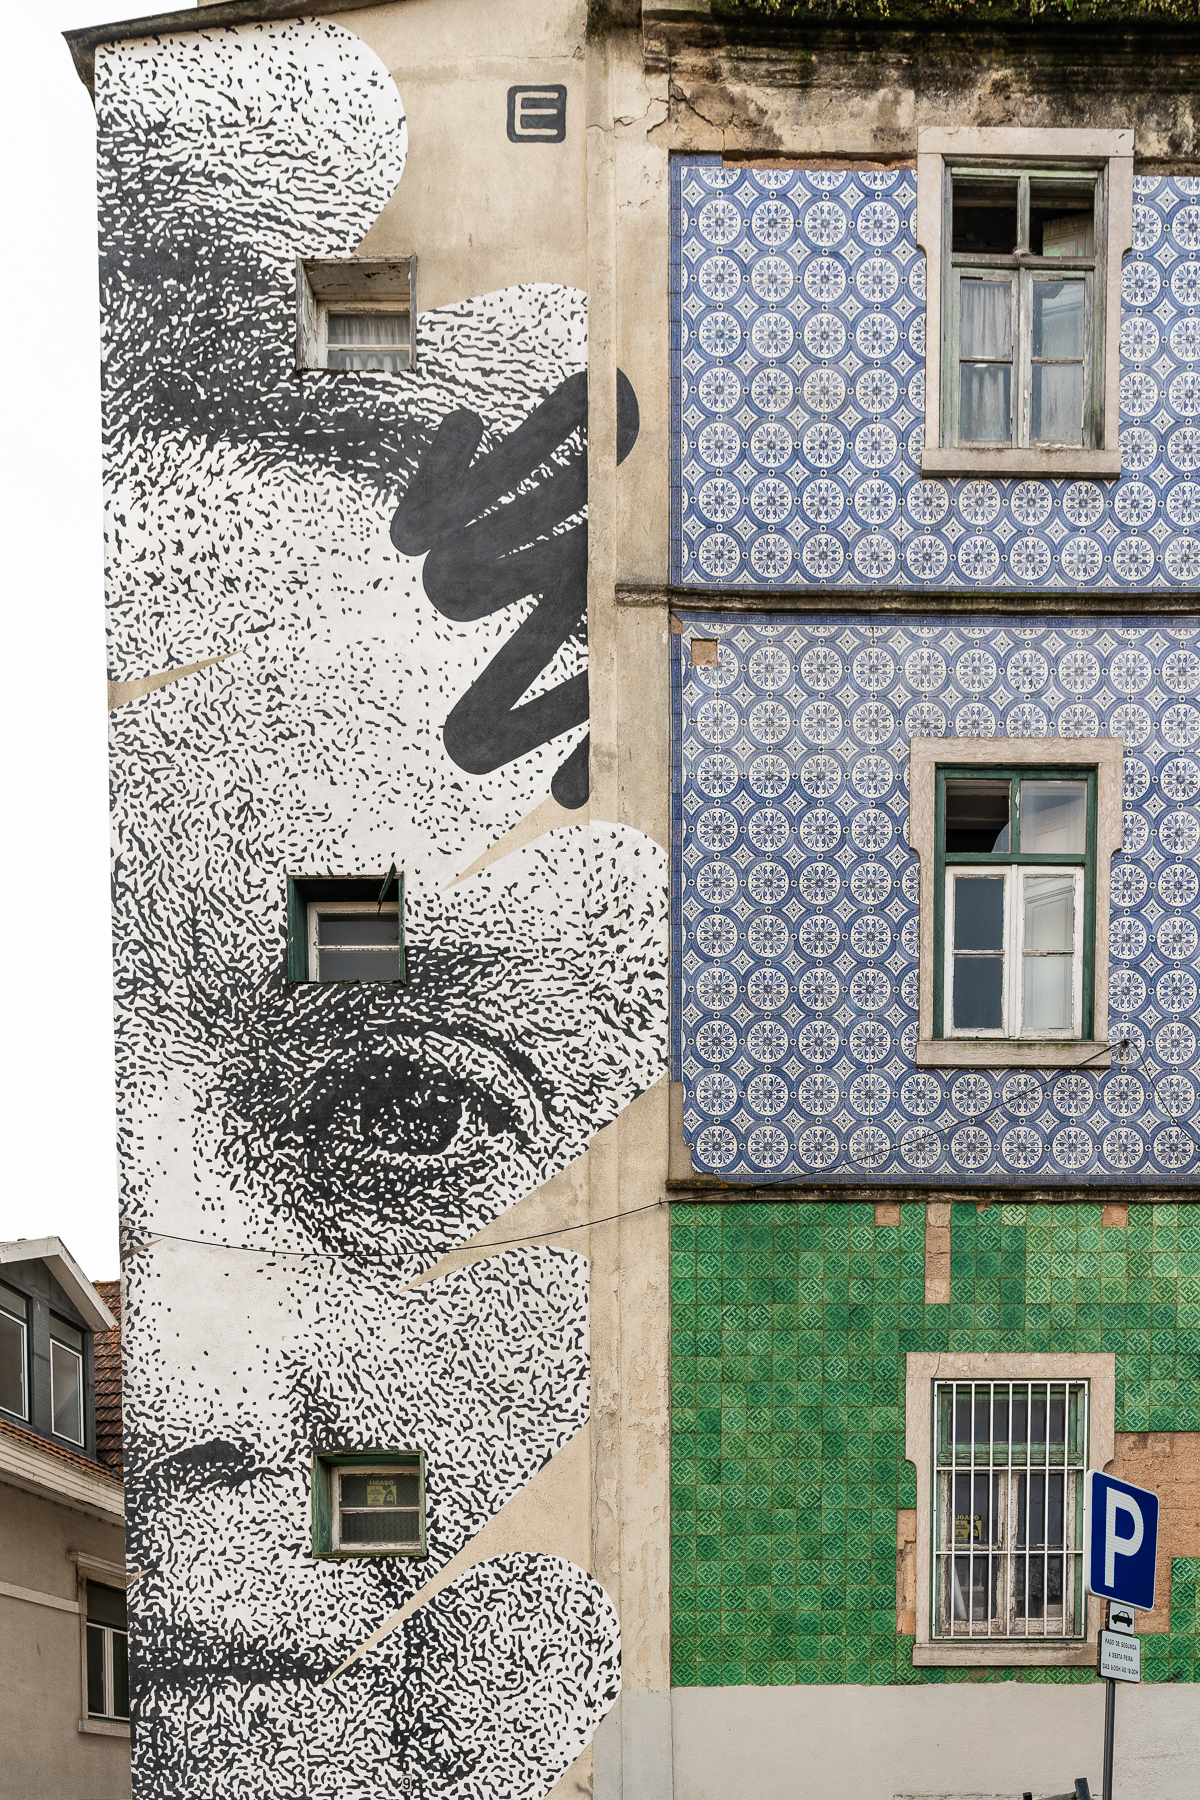 Stencilled black and white mural of the face of Sophia